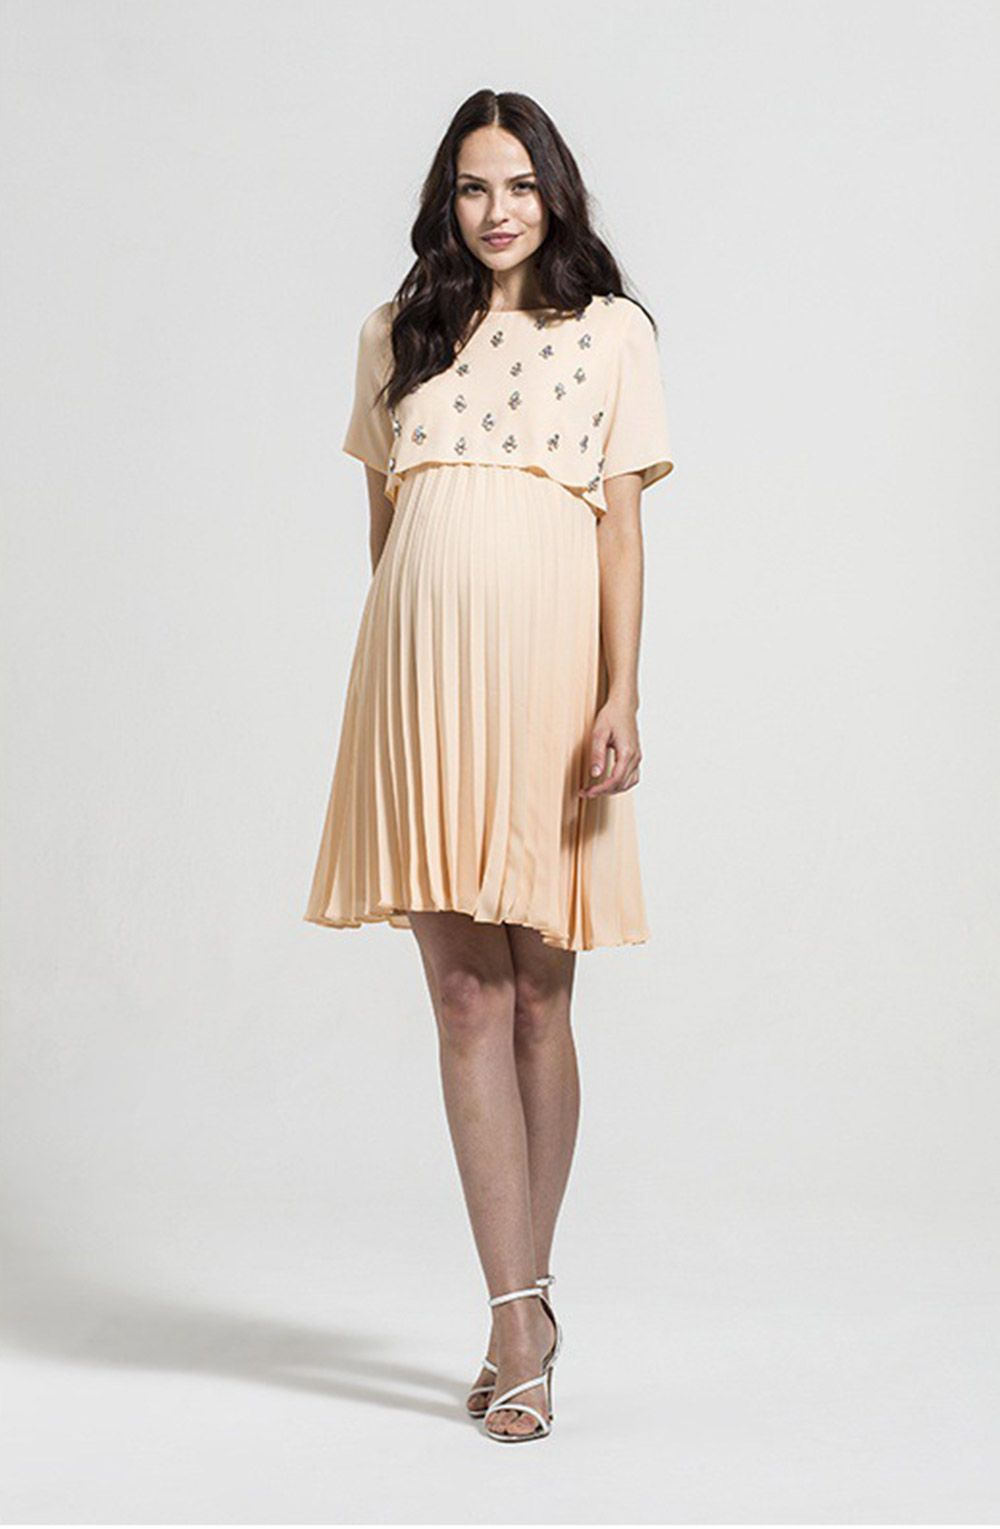 maternity dress for wedding Stardust Maternity Wedding Guest Dress